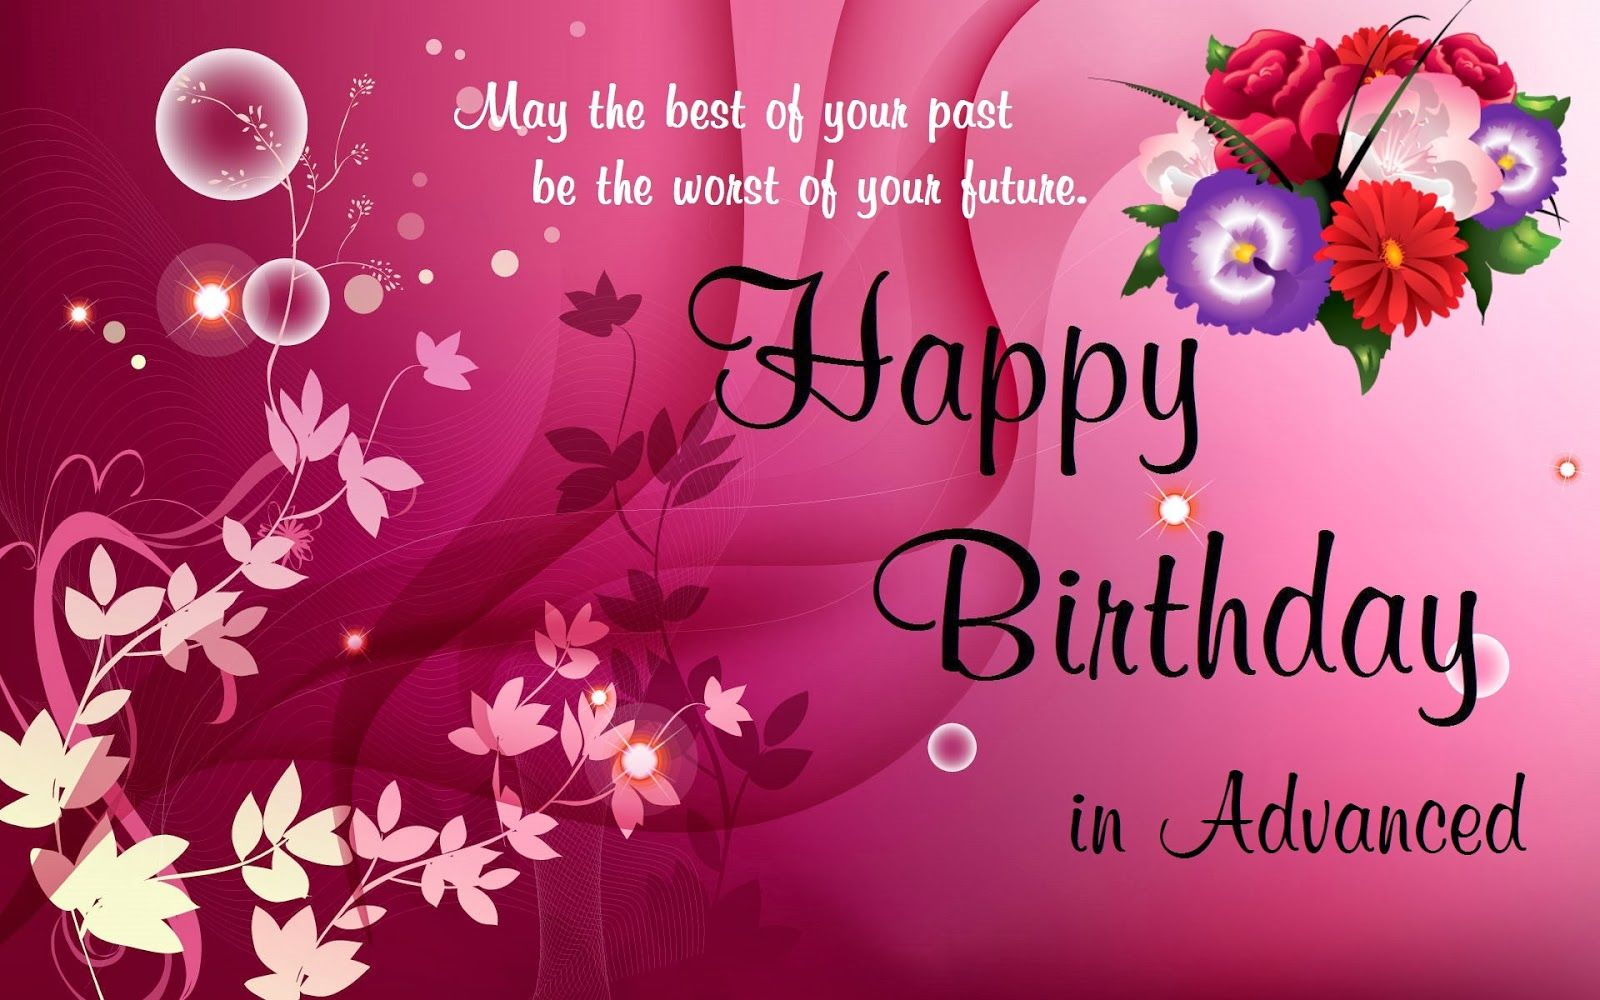 Happy Birthday In Advanced Pictures, Photos, and Images ...